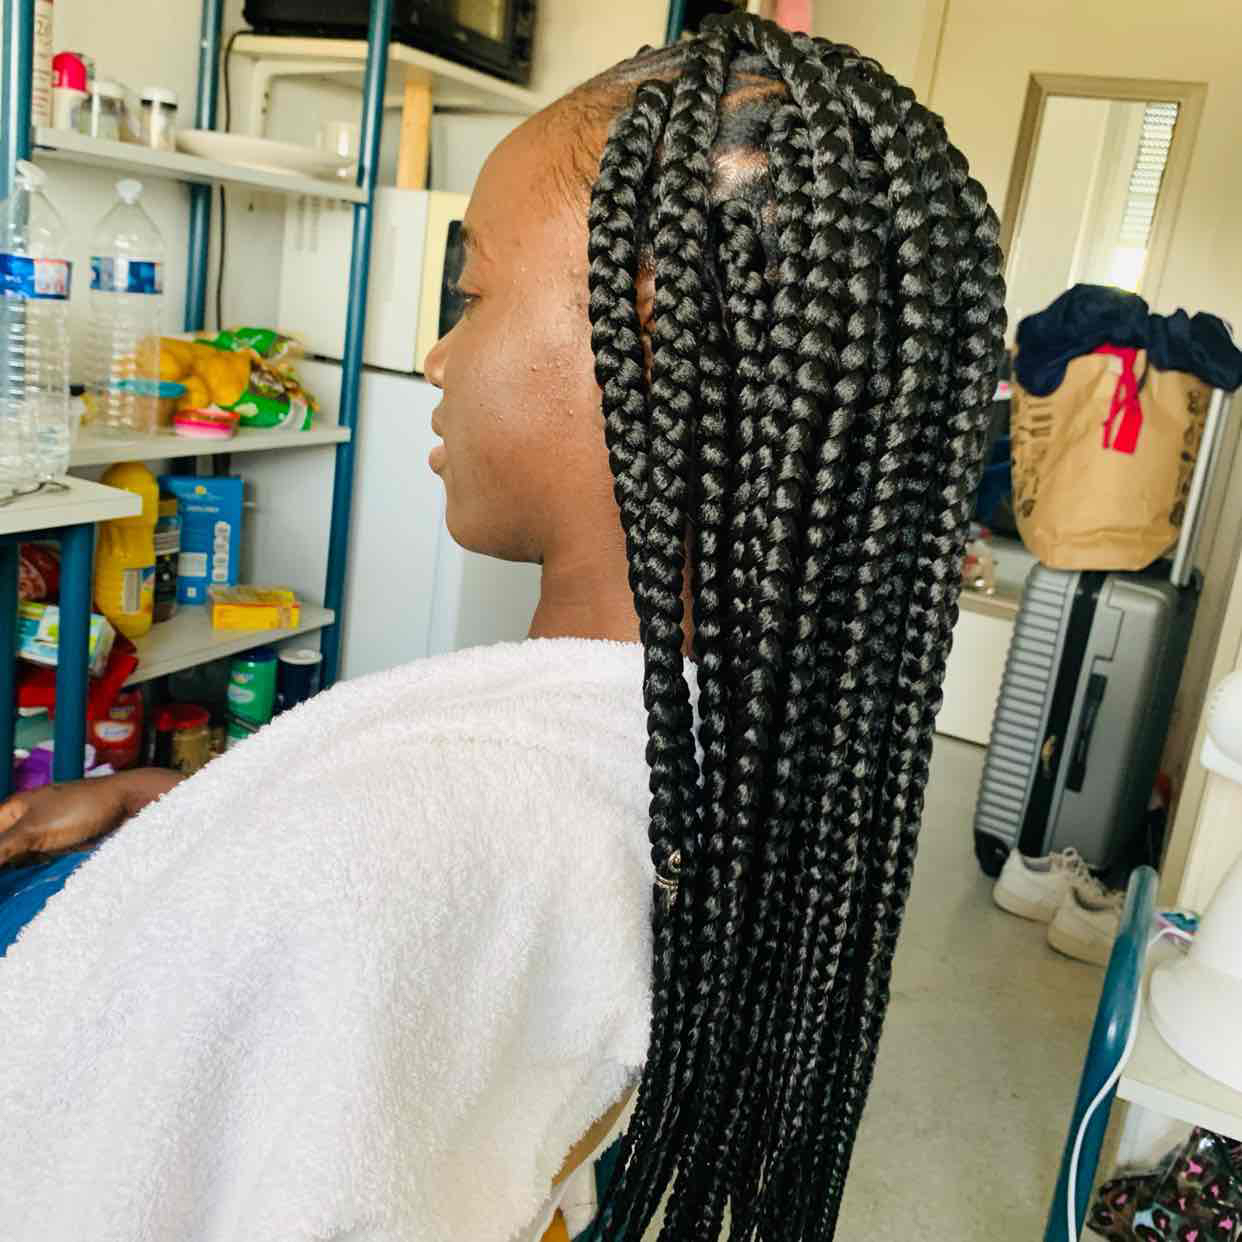 salon de coiffure afro tresse tresses box braids crochet braids vanilles tissages paris 75 77 78 91 92 93 94 95 IQAKRGIM